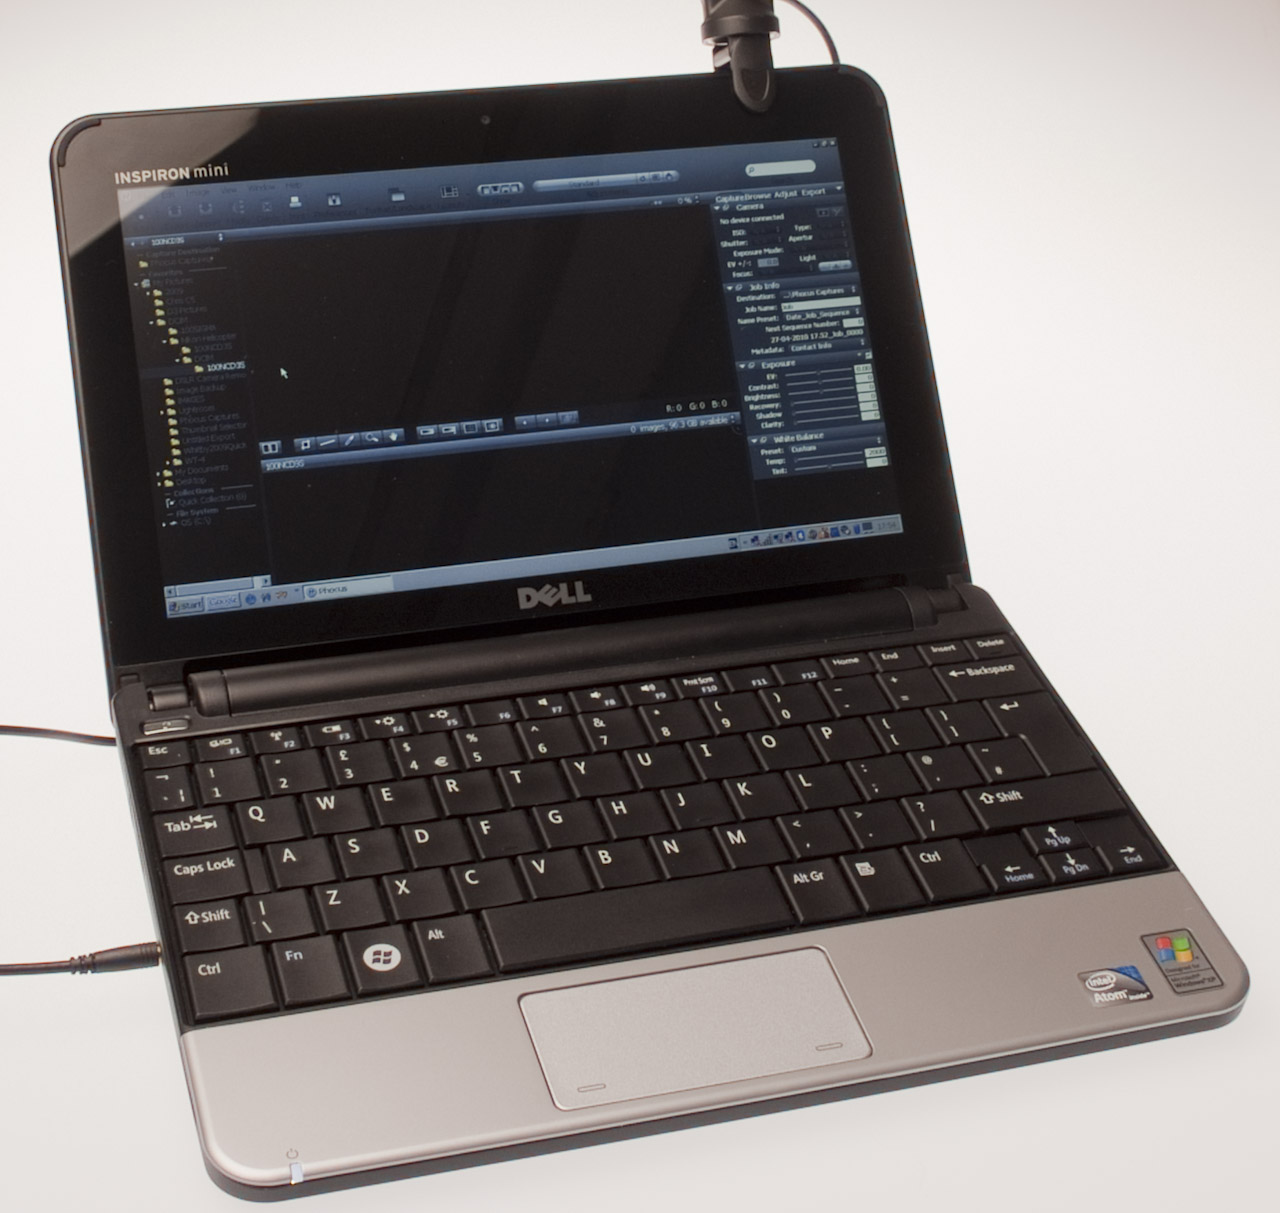 Dell Laptops Inspiron Mini 10 Drivers Download for Windows 7 10